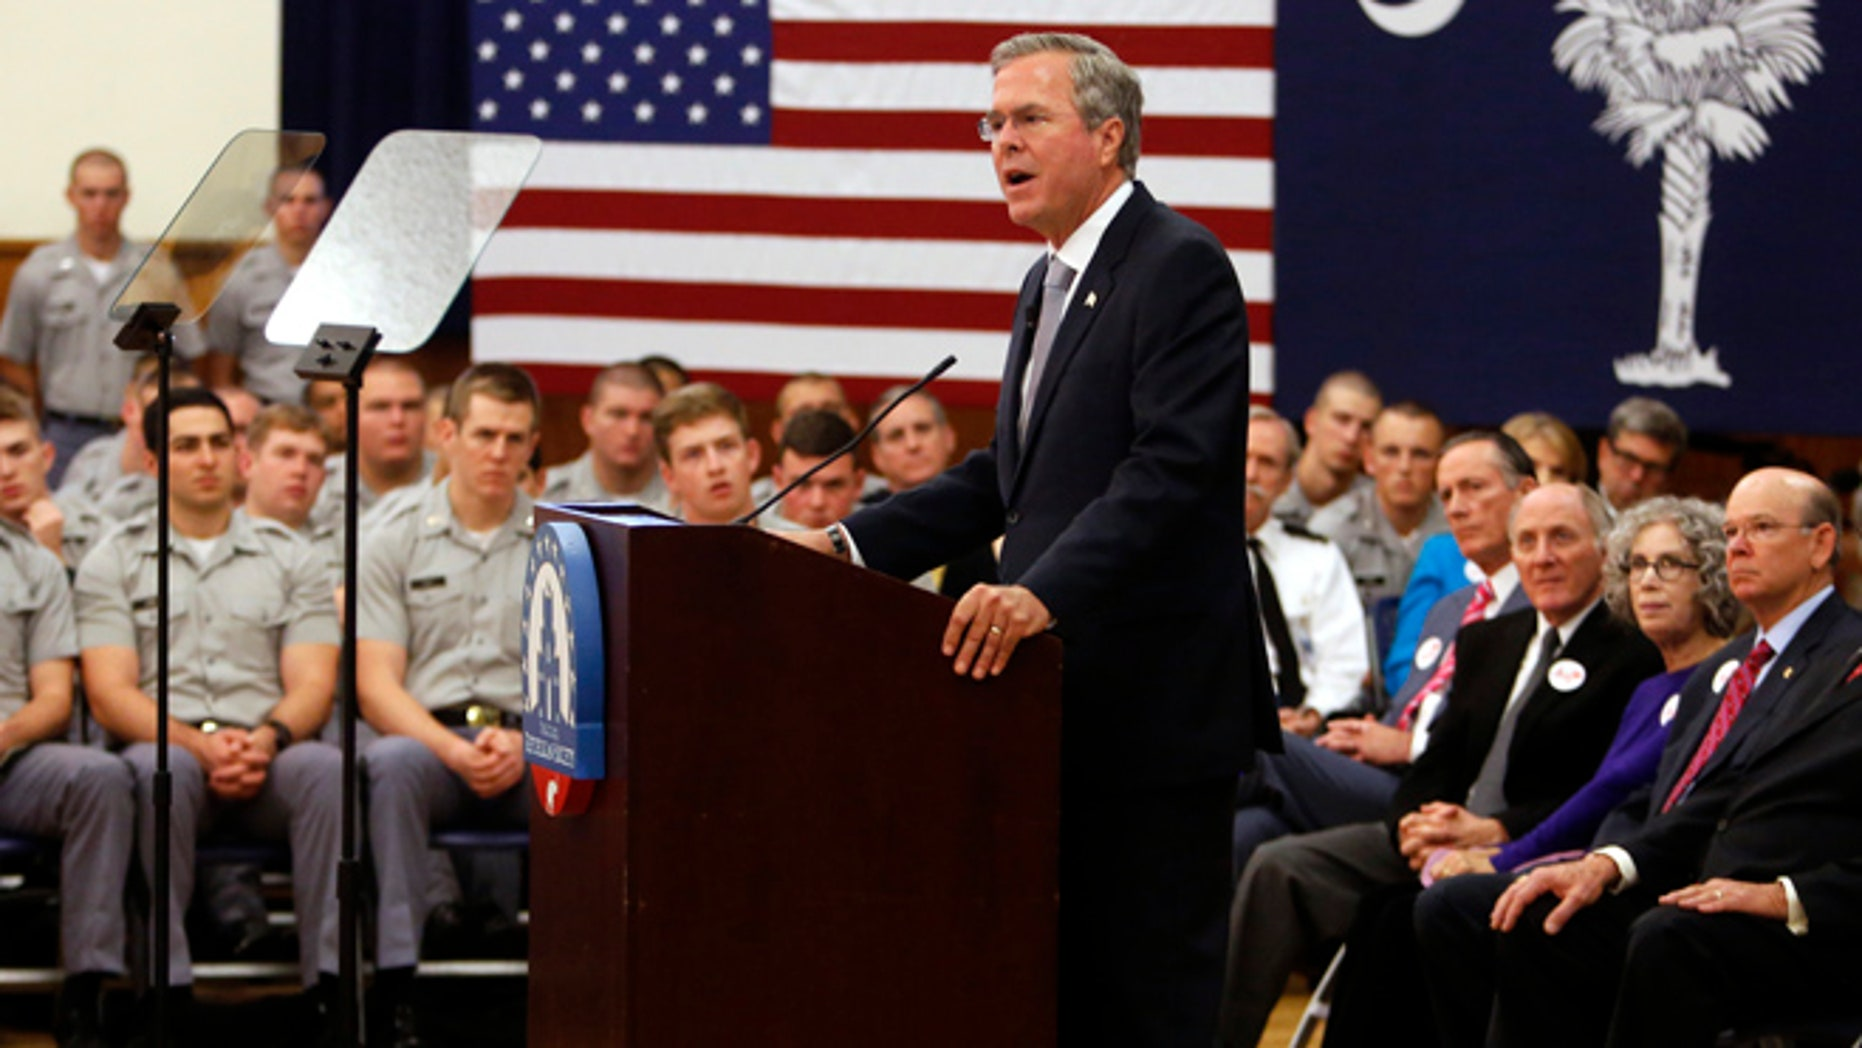 Nov. 18, 2015: Republican presidential candidate, former Florida Gov. Jeb Bush, gives a speech on foreign policy and national defense on the campus of The Citadel in Charleston, S.C. (AP)